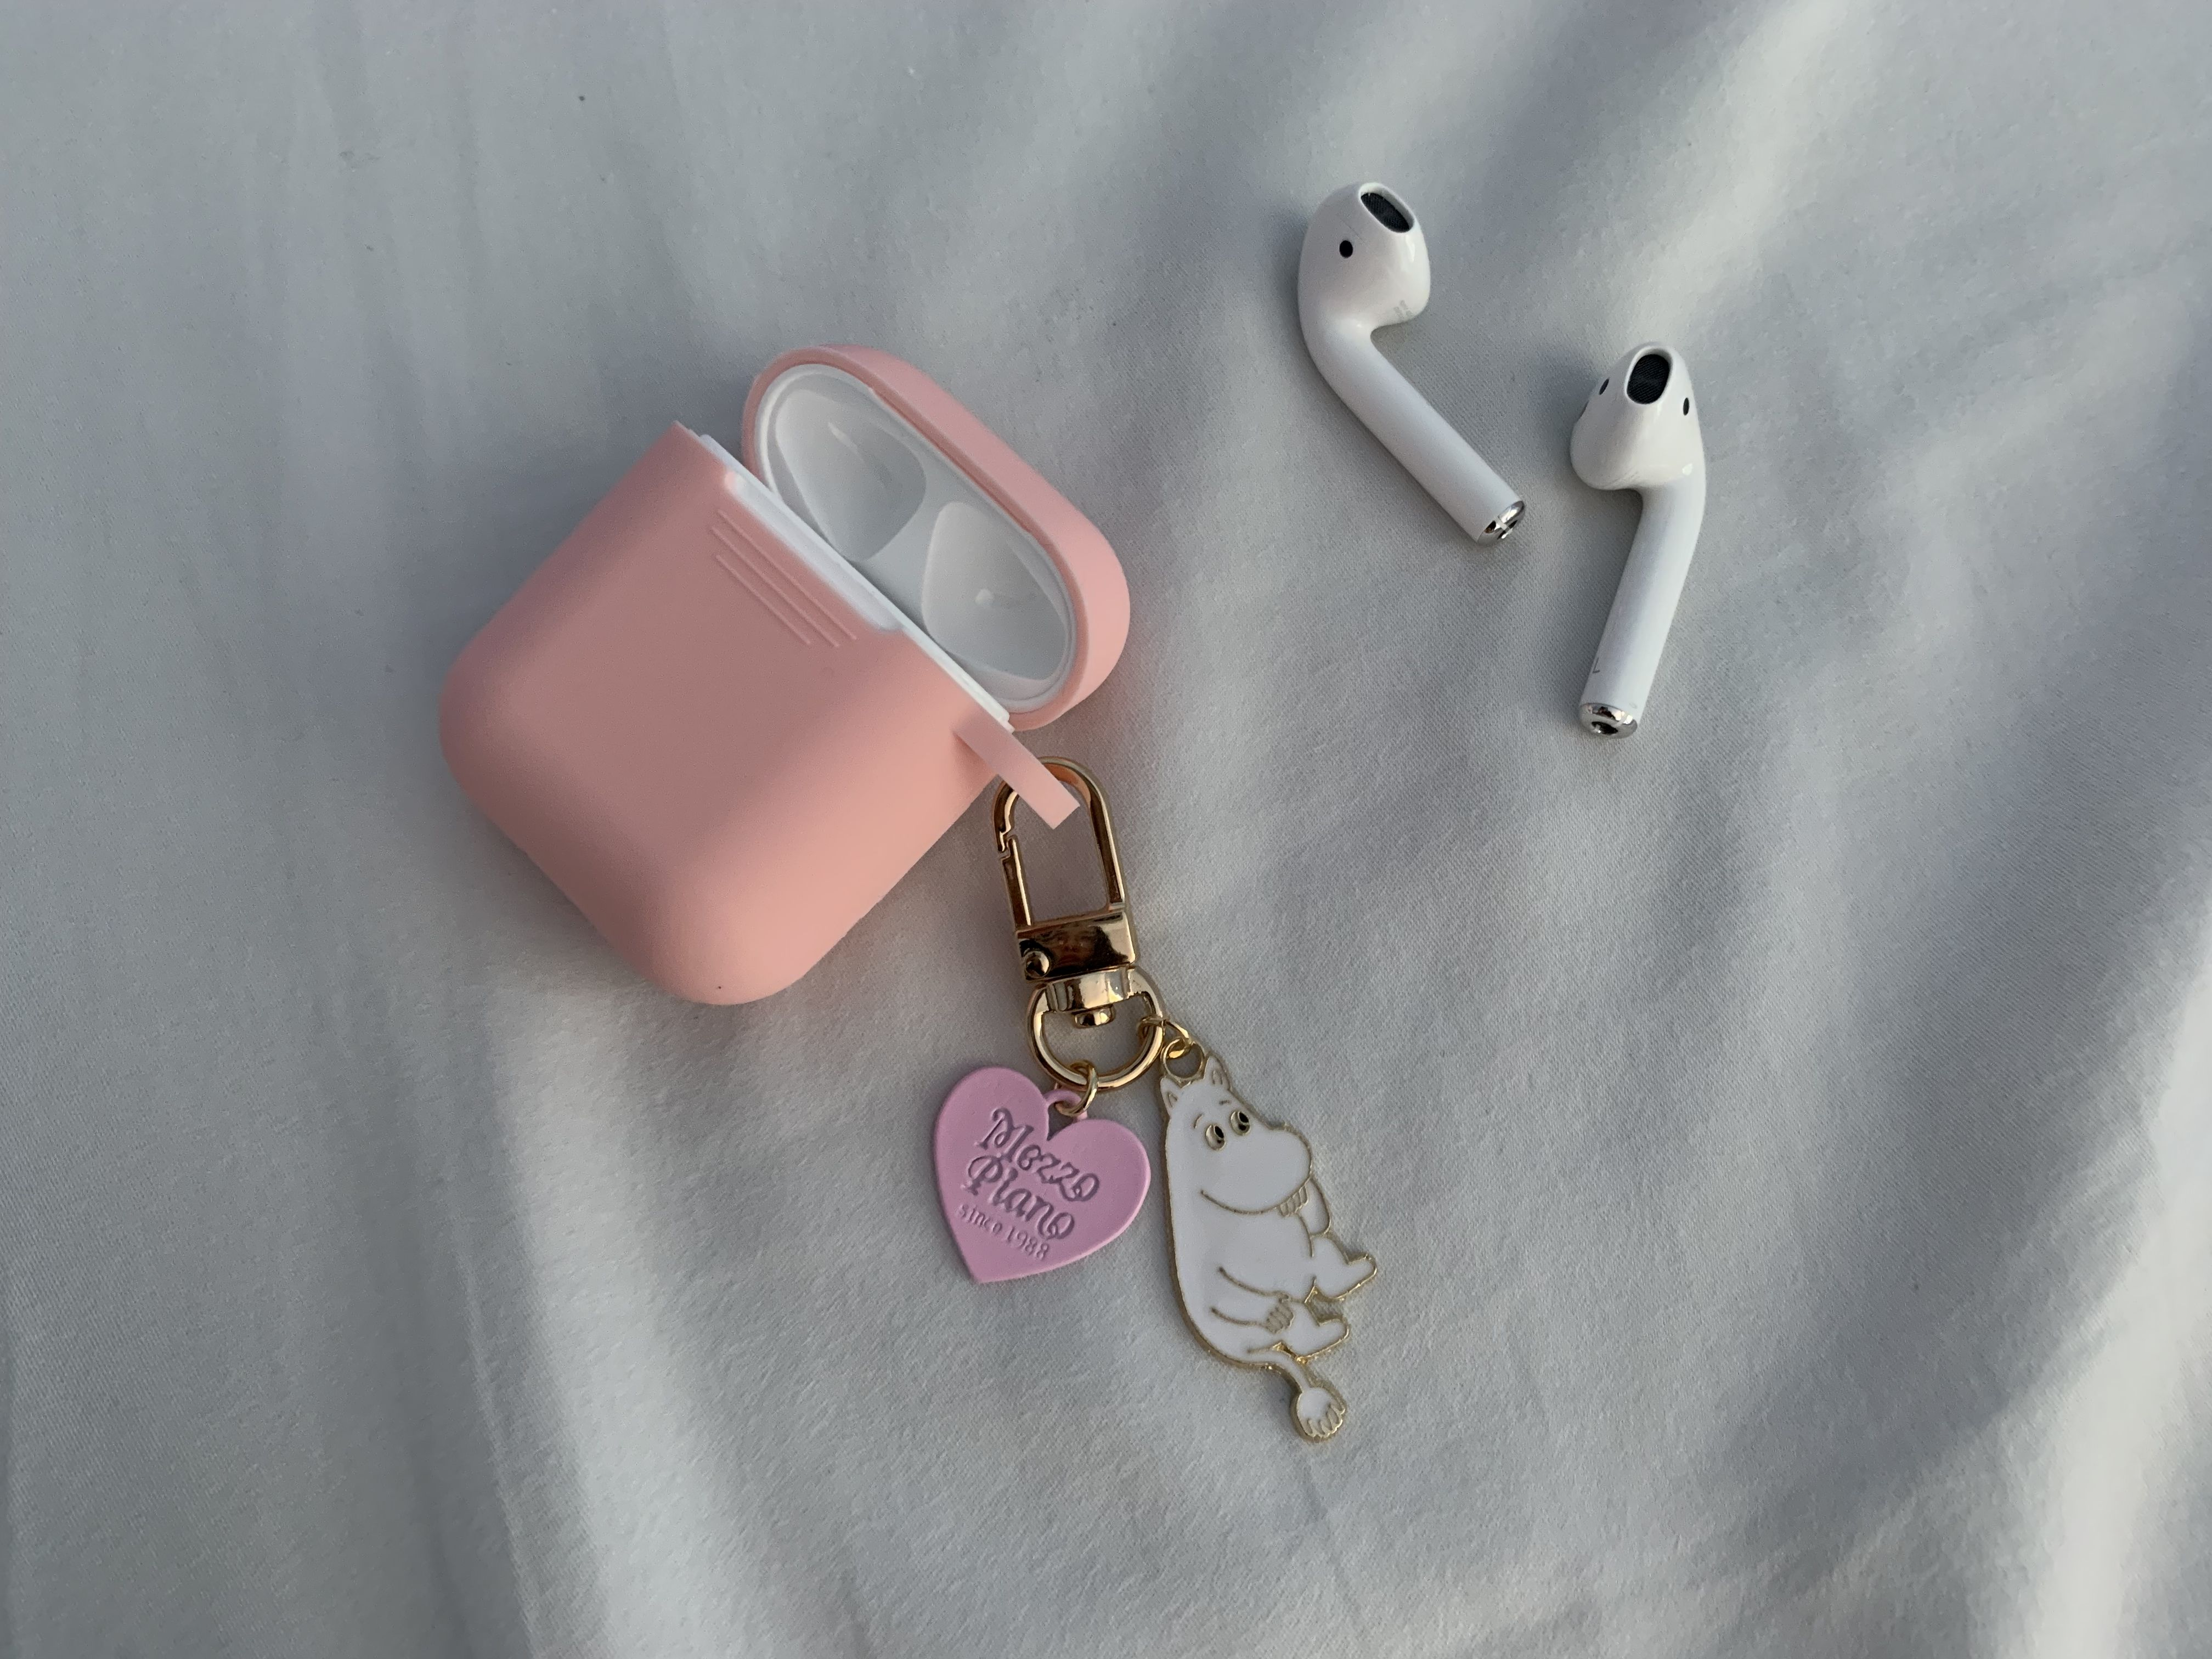 Airpods Case Keychain Cute Ipod Cases Phone Case Accessories Apple Phone Case